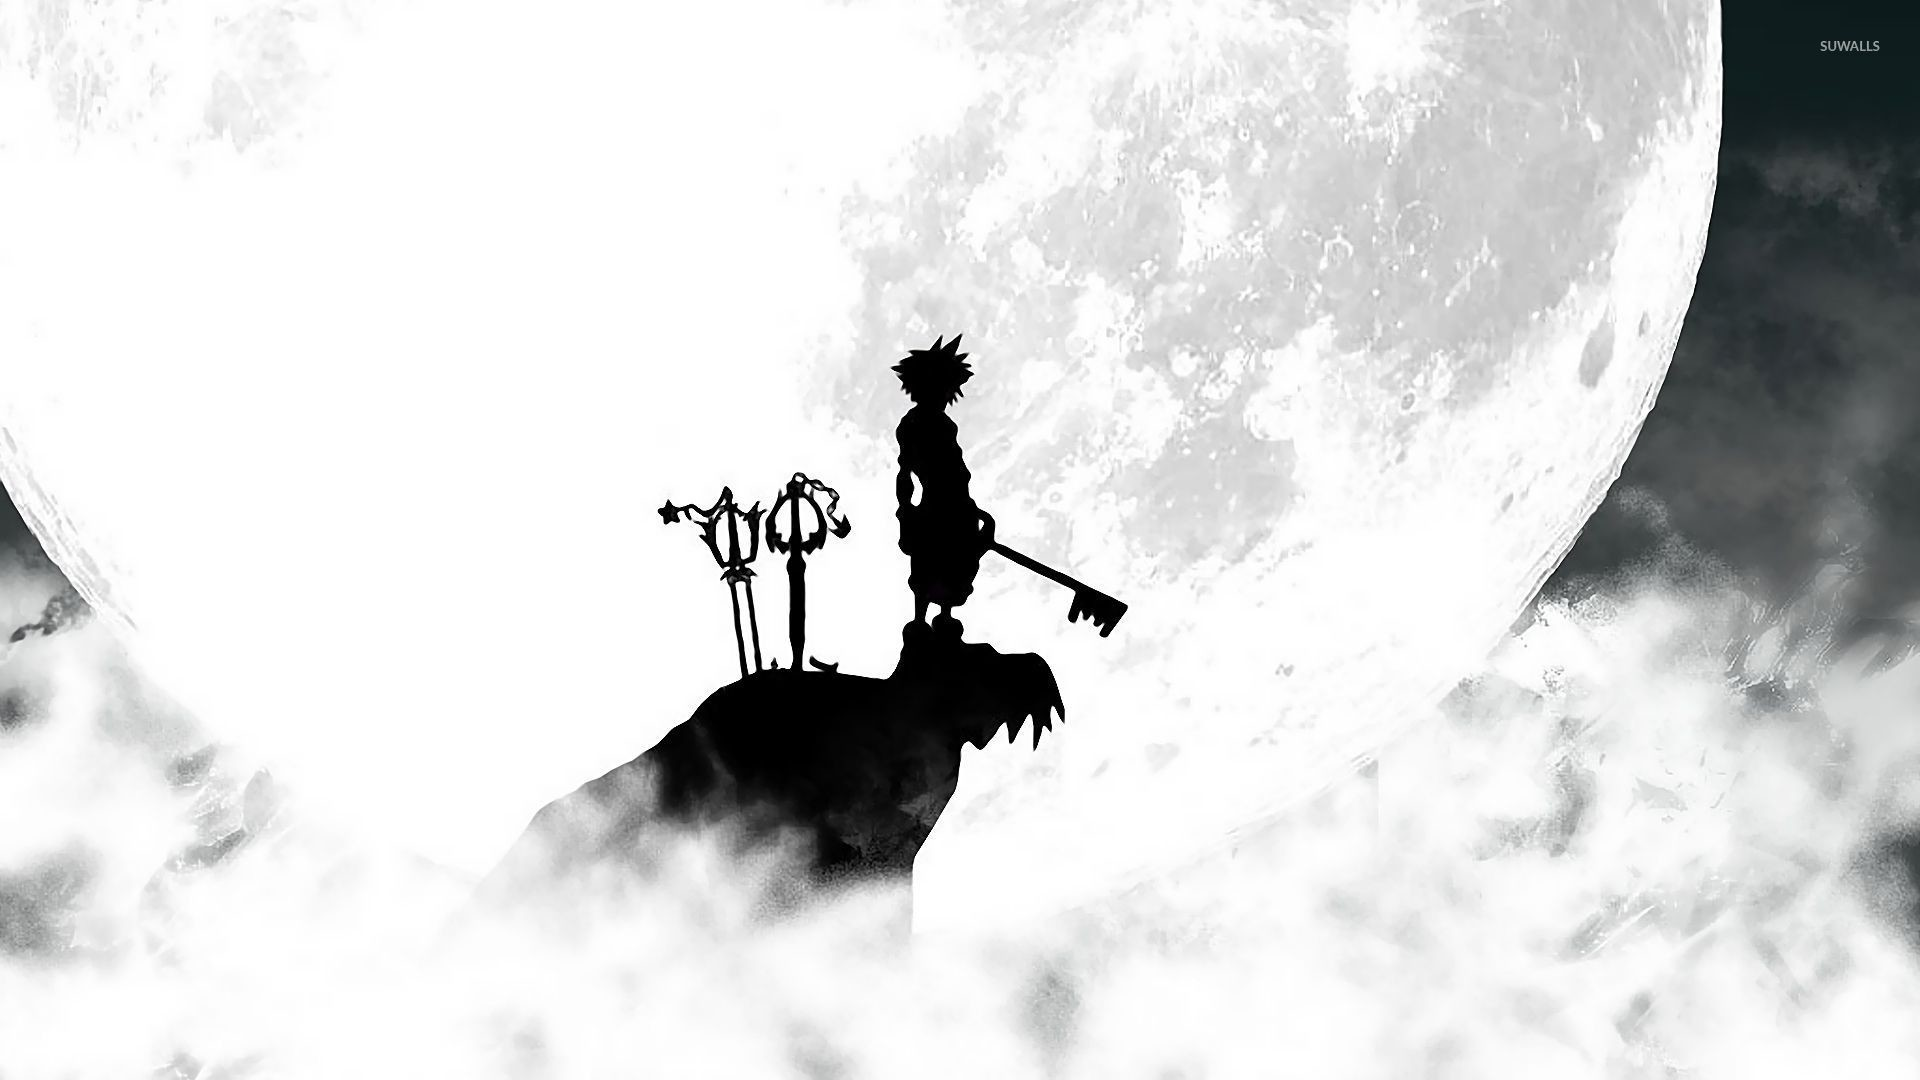 Res: 1920x1080, Kingdom Hearts 3 warrior on the cliff wallpaper